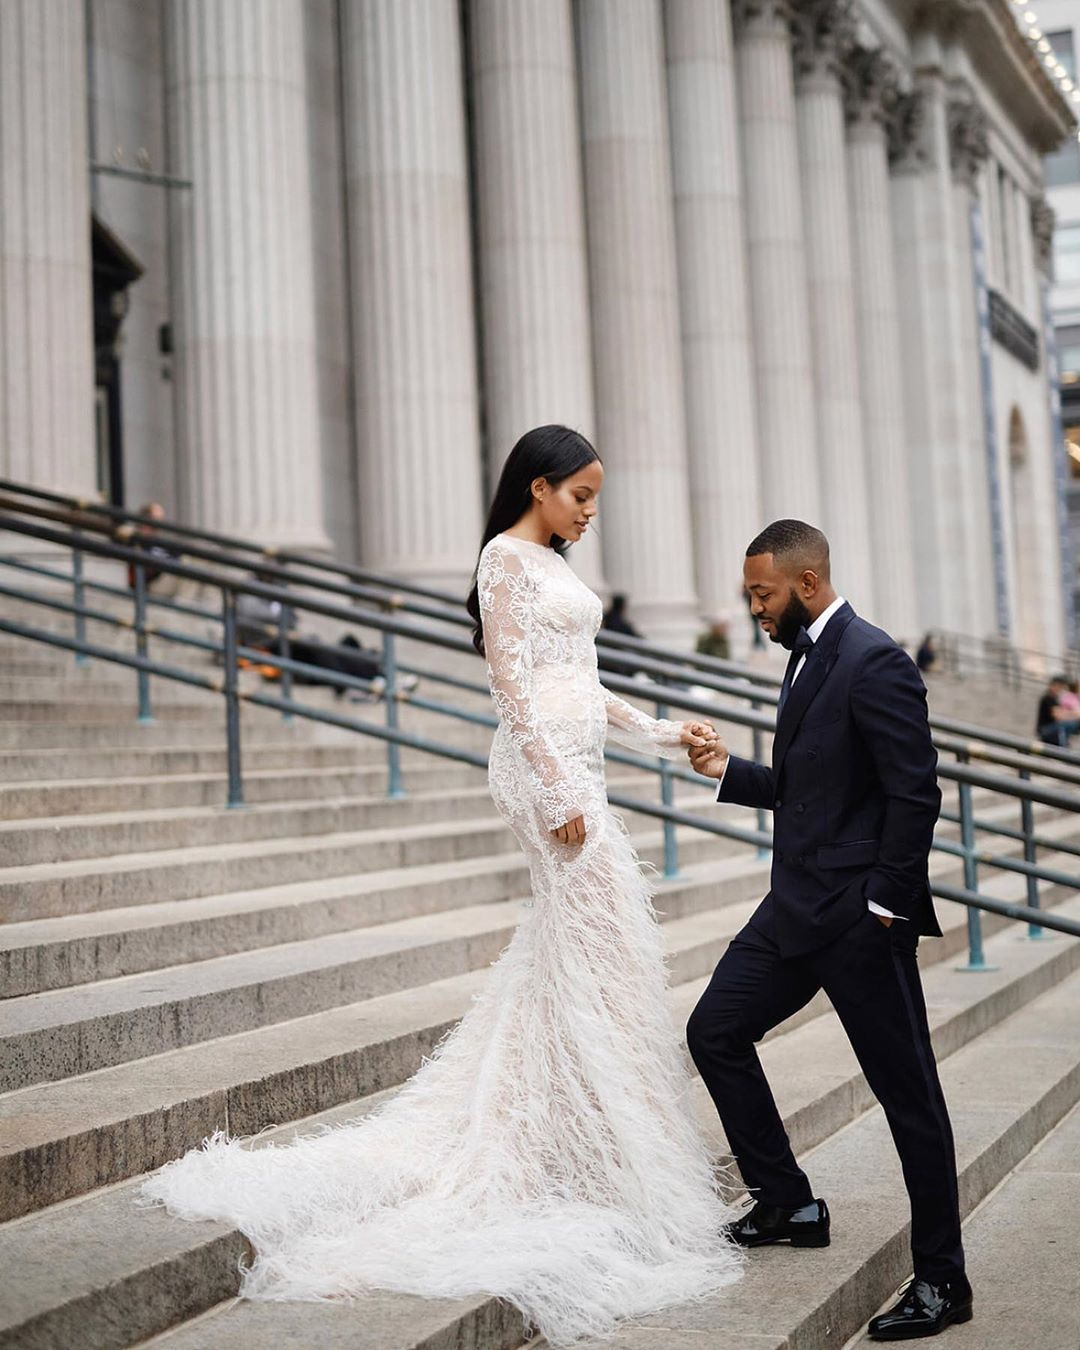 Wona Concept On Instagram 50 Off Each Gown Sample Sale At Wona Nyc Don T Miss To Buy Your Dr In 2020 New Wedding Dresses Wedding Dresses Wedding Dresses For Sale,Cheap Wedding Dresses For Sale Near Me